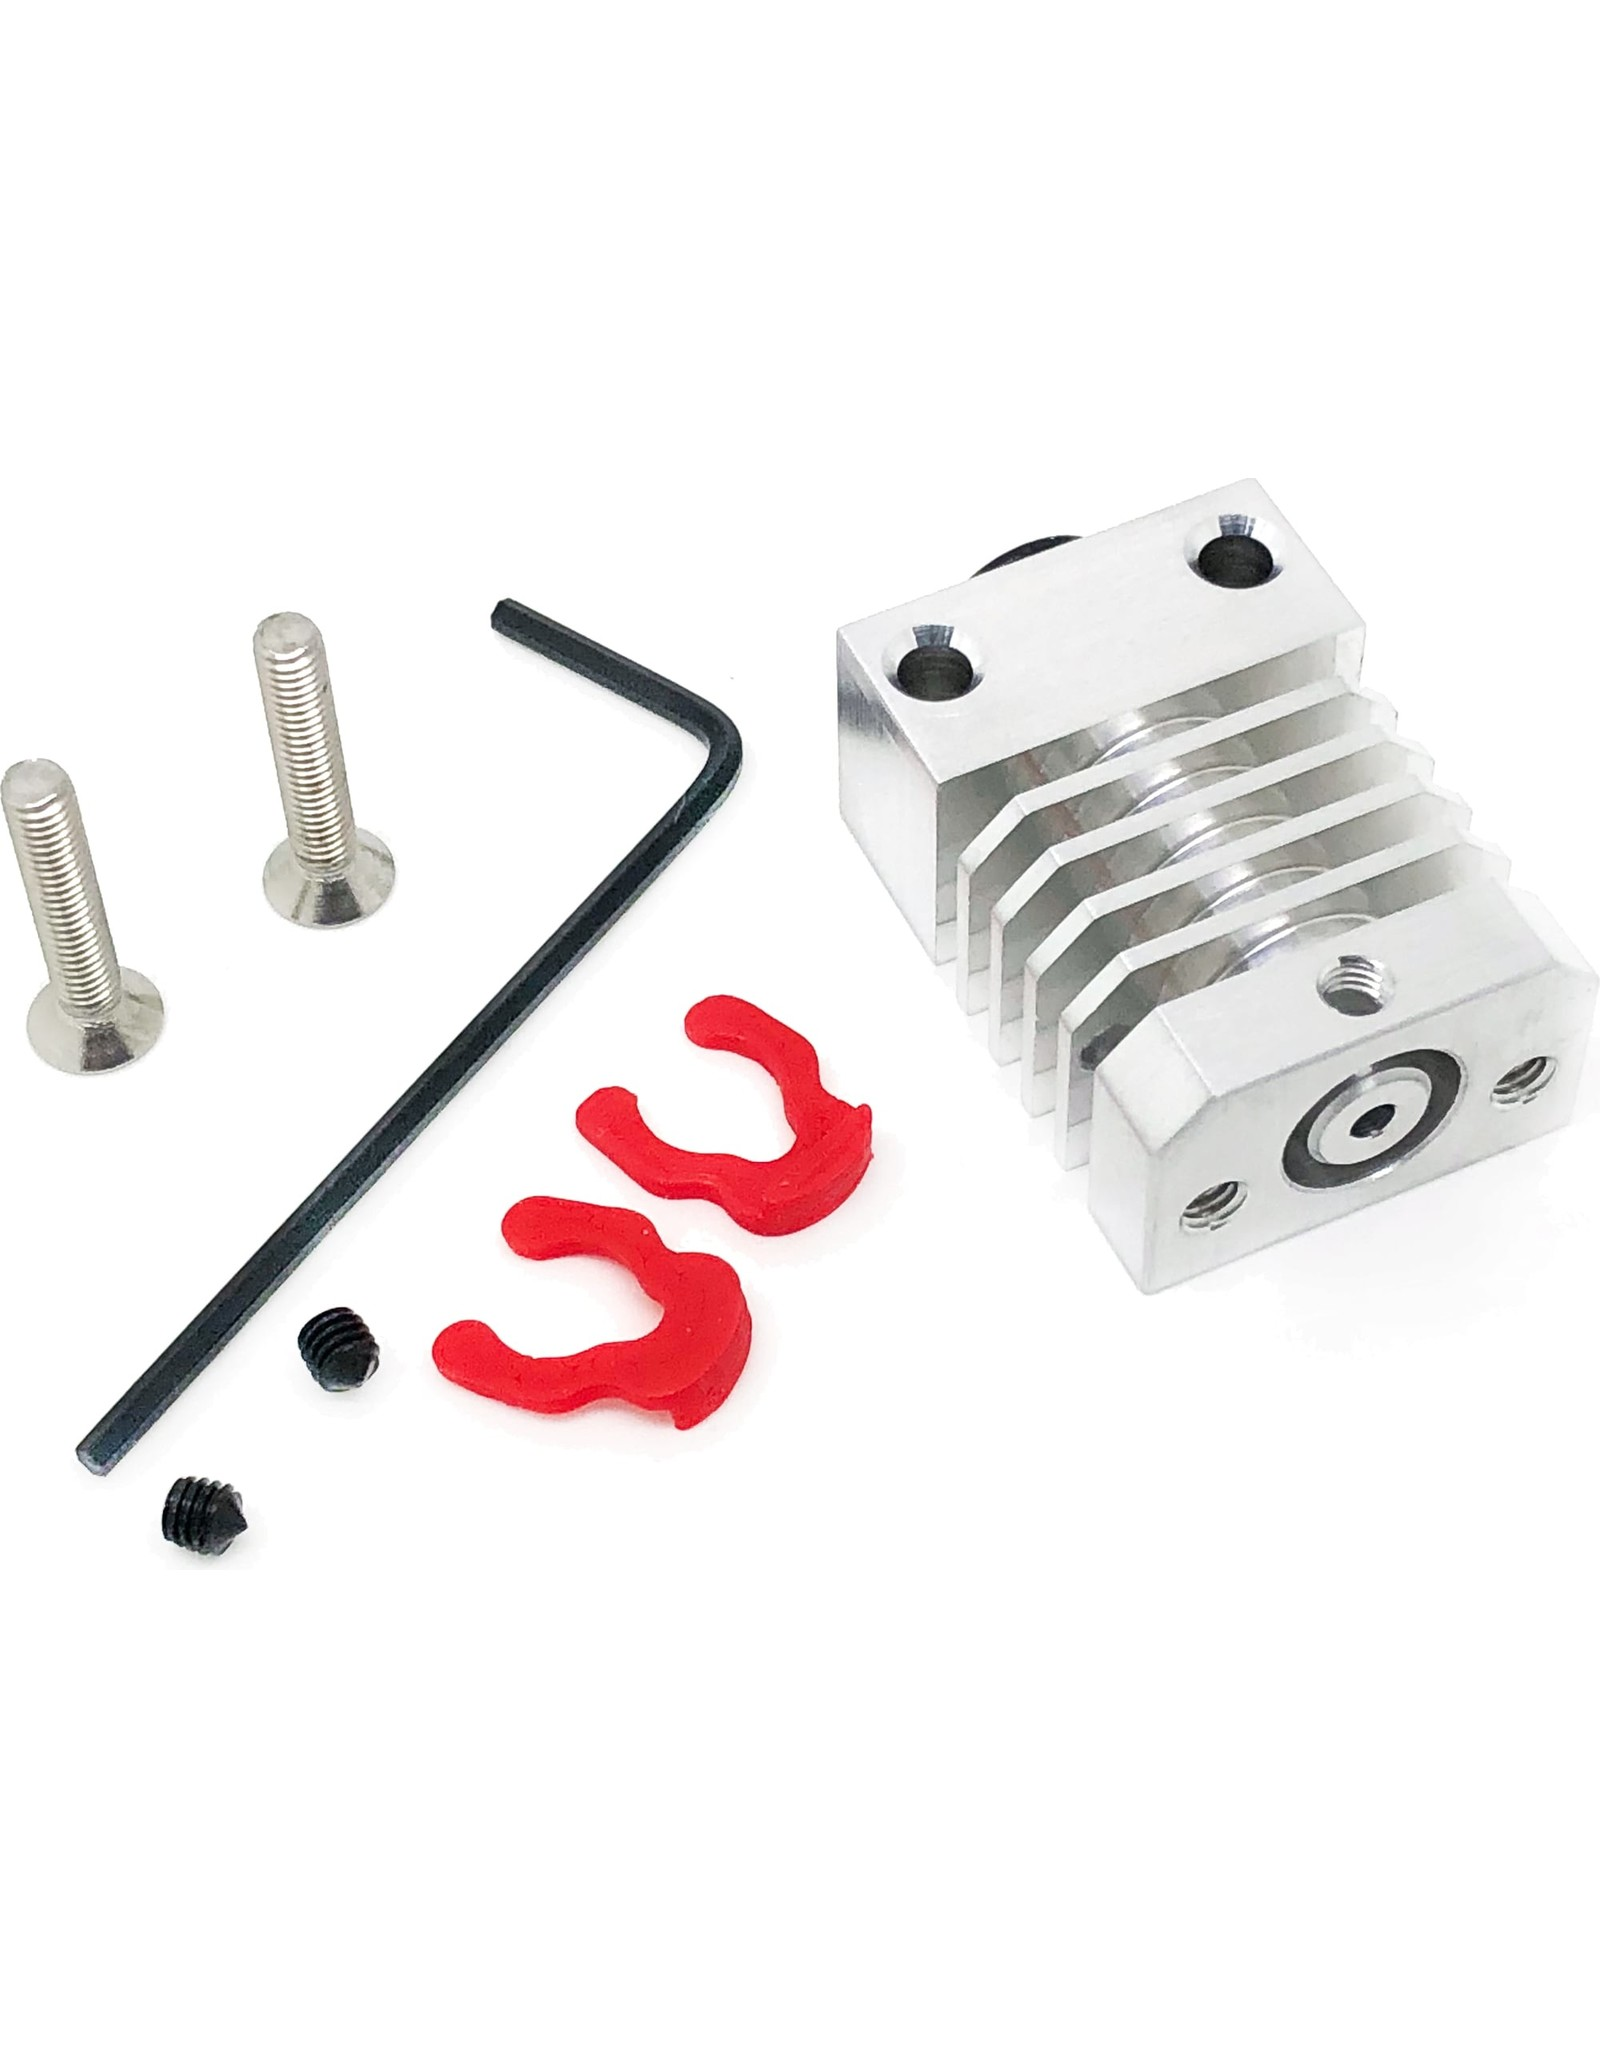 Micro Swiss Replacement Cooling Block for Micro Swiss All Metal Hotend Kit for CR-10 Printer